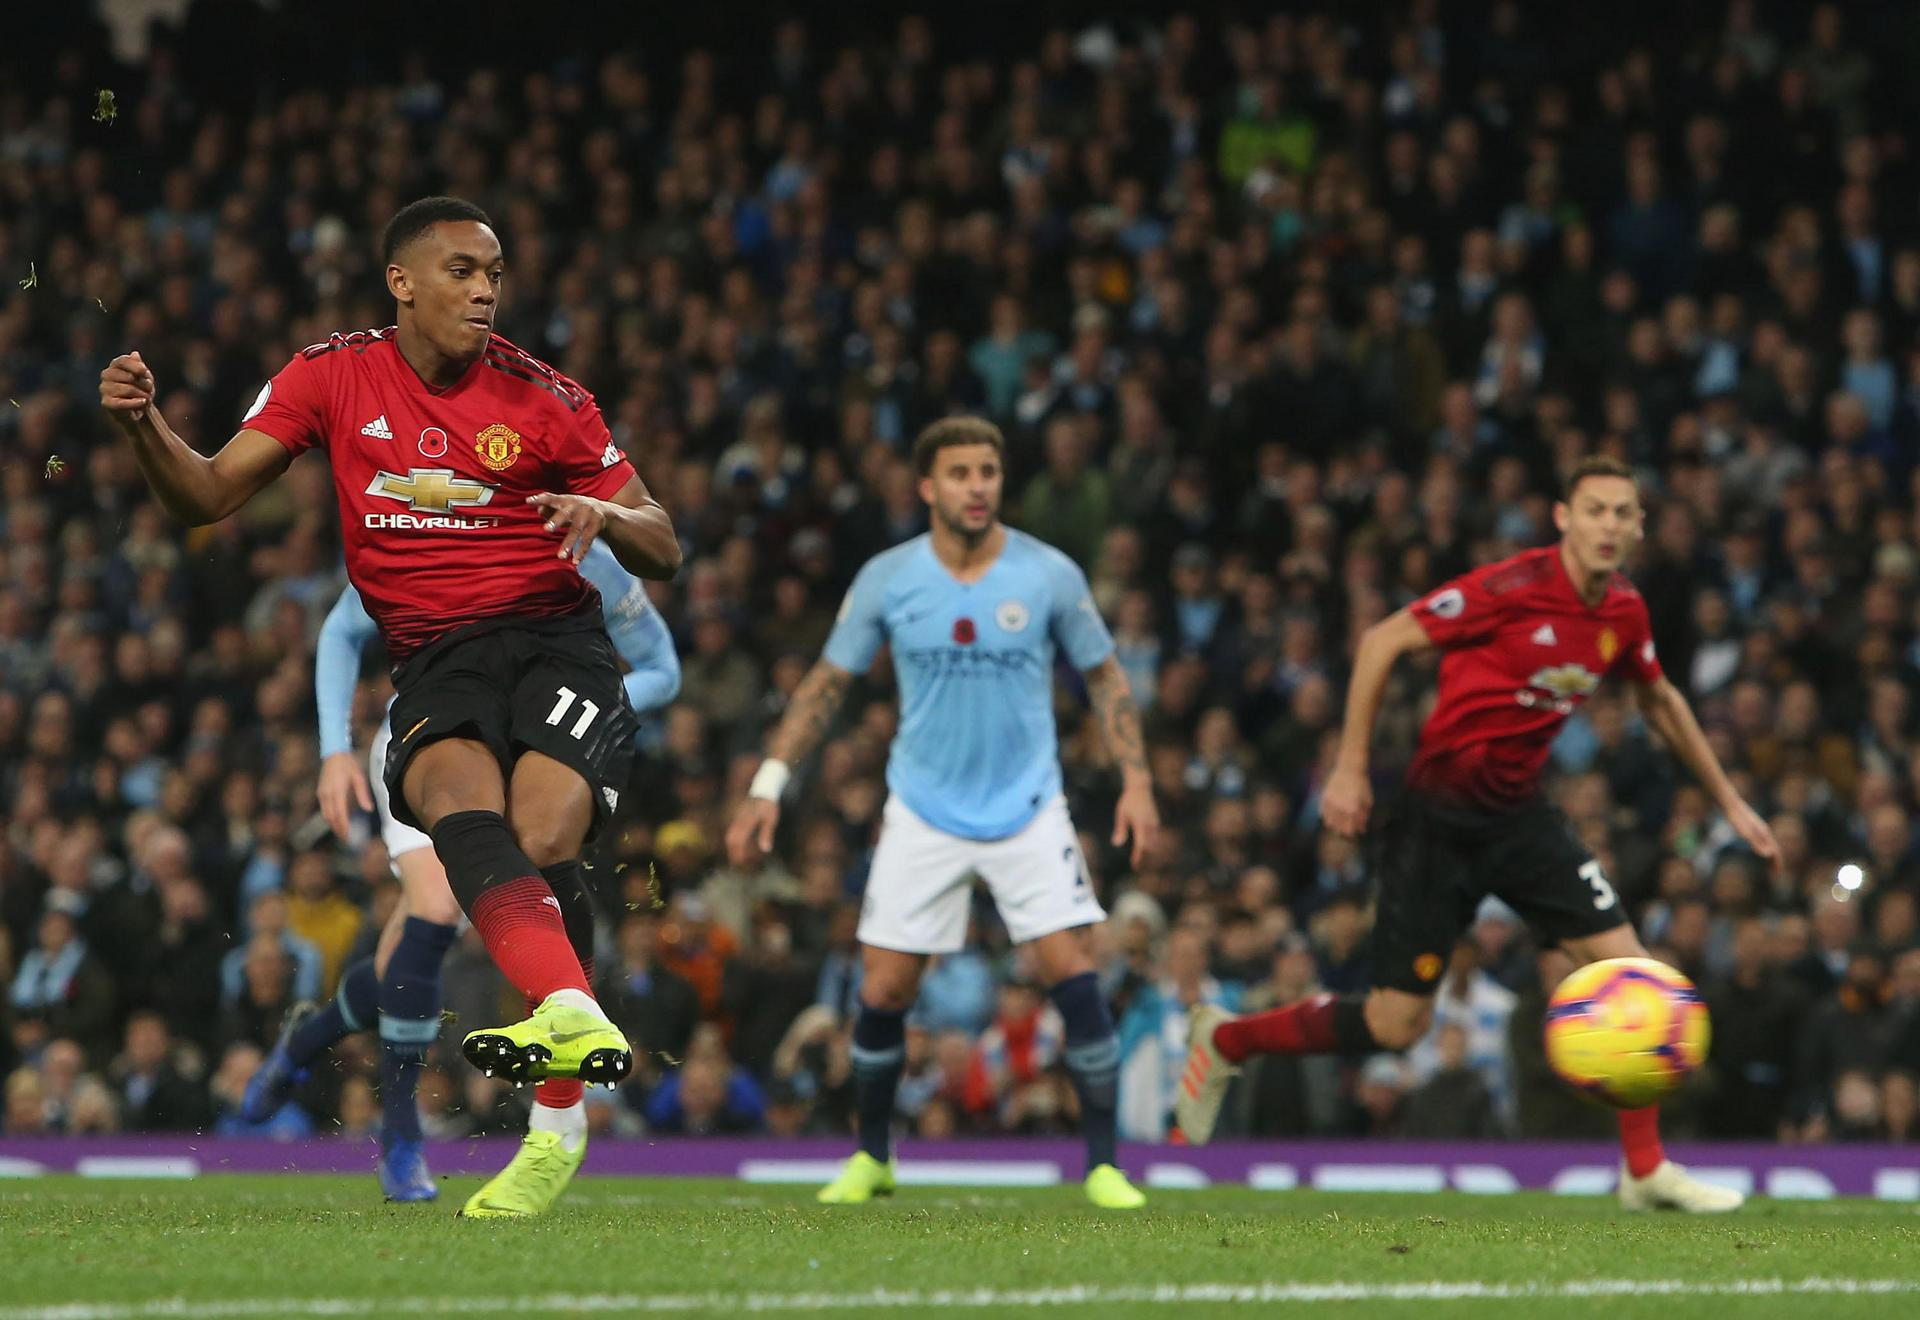 Anthony Martial strokes in the penalty against Manchester City.